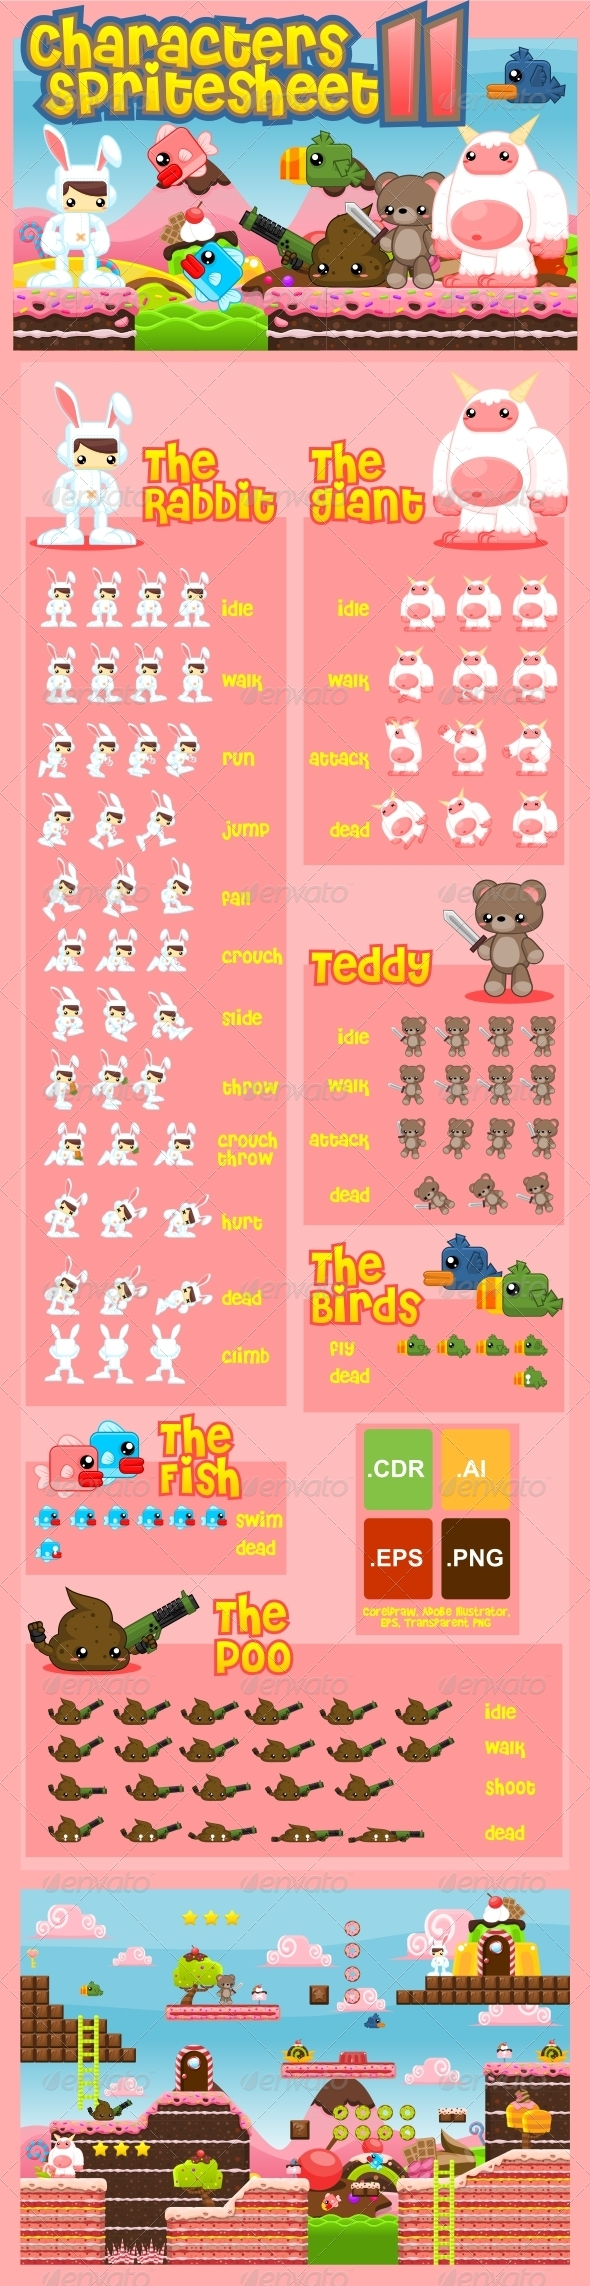 GraphicRiver Characters Spritesheet 11 7065212